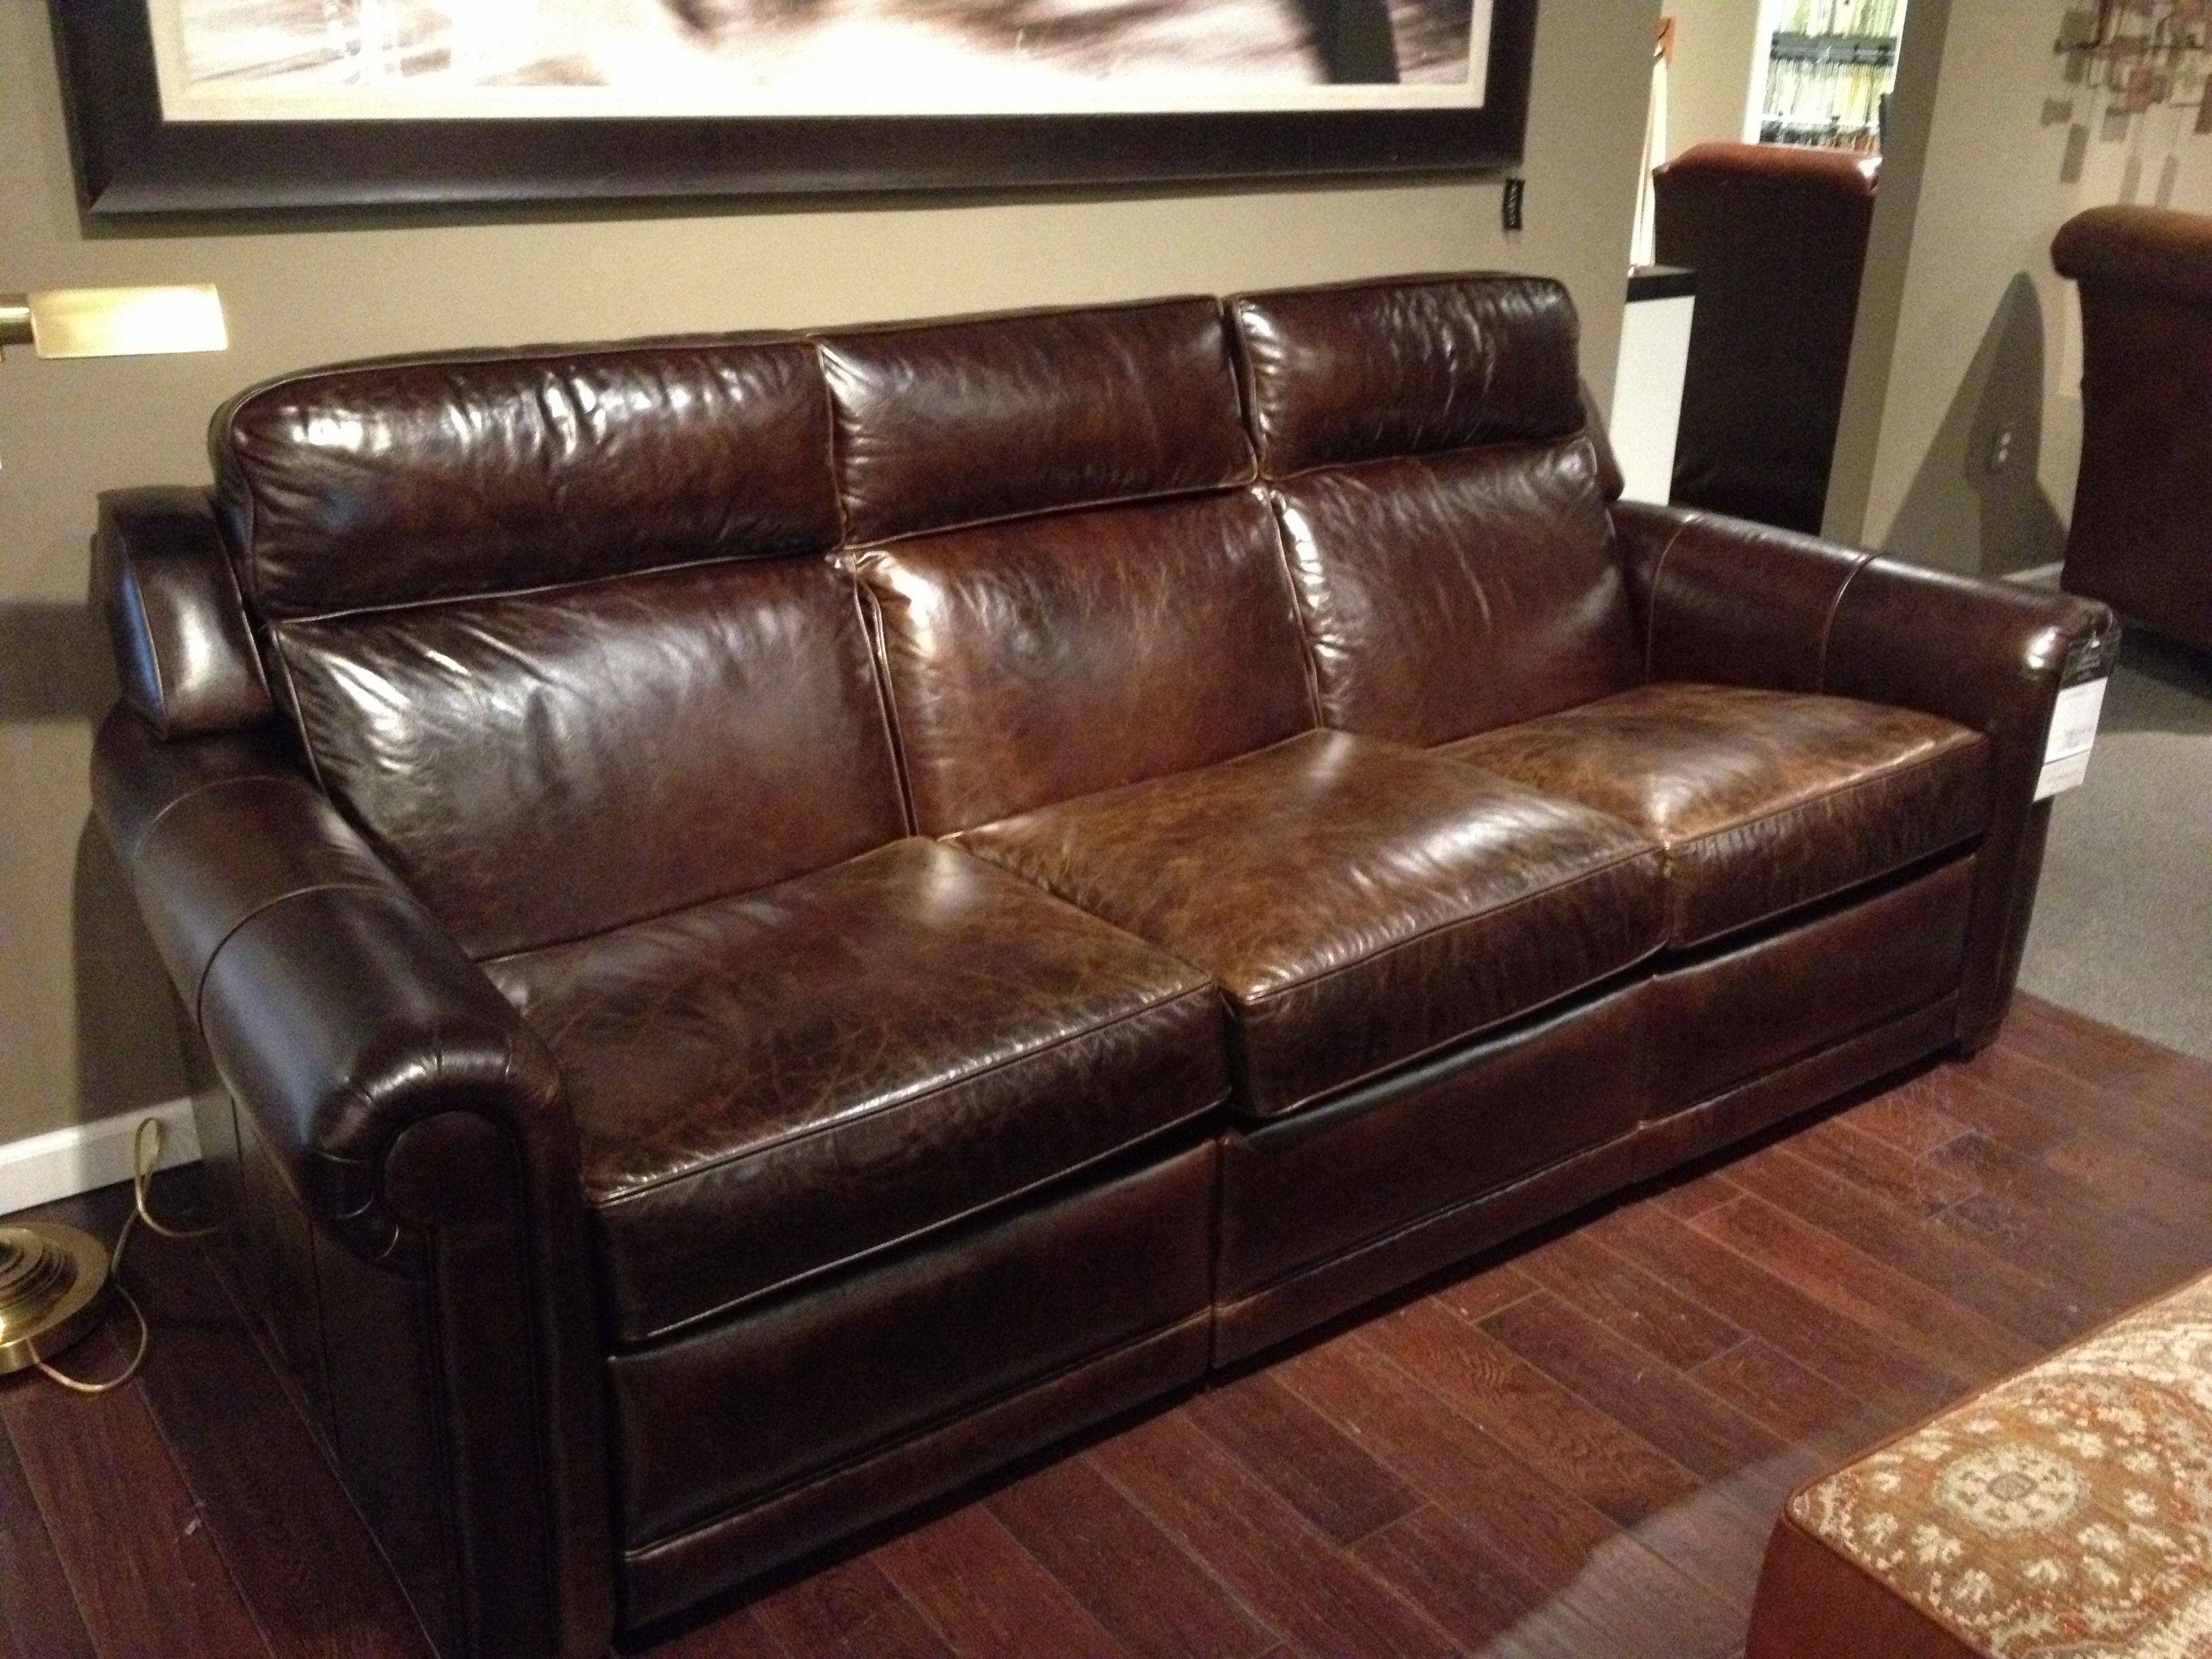 New Reclining Sofa From Ethan Allen Very Comfortable